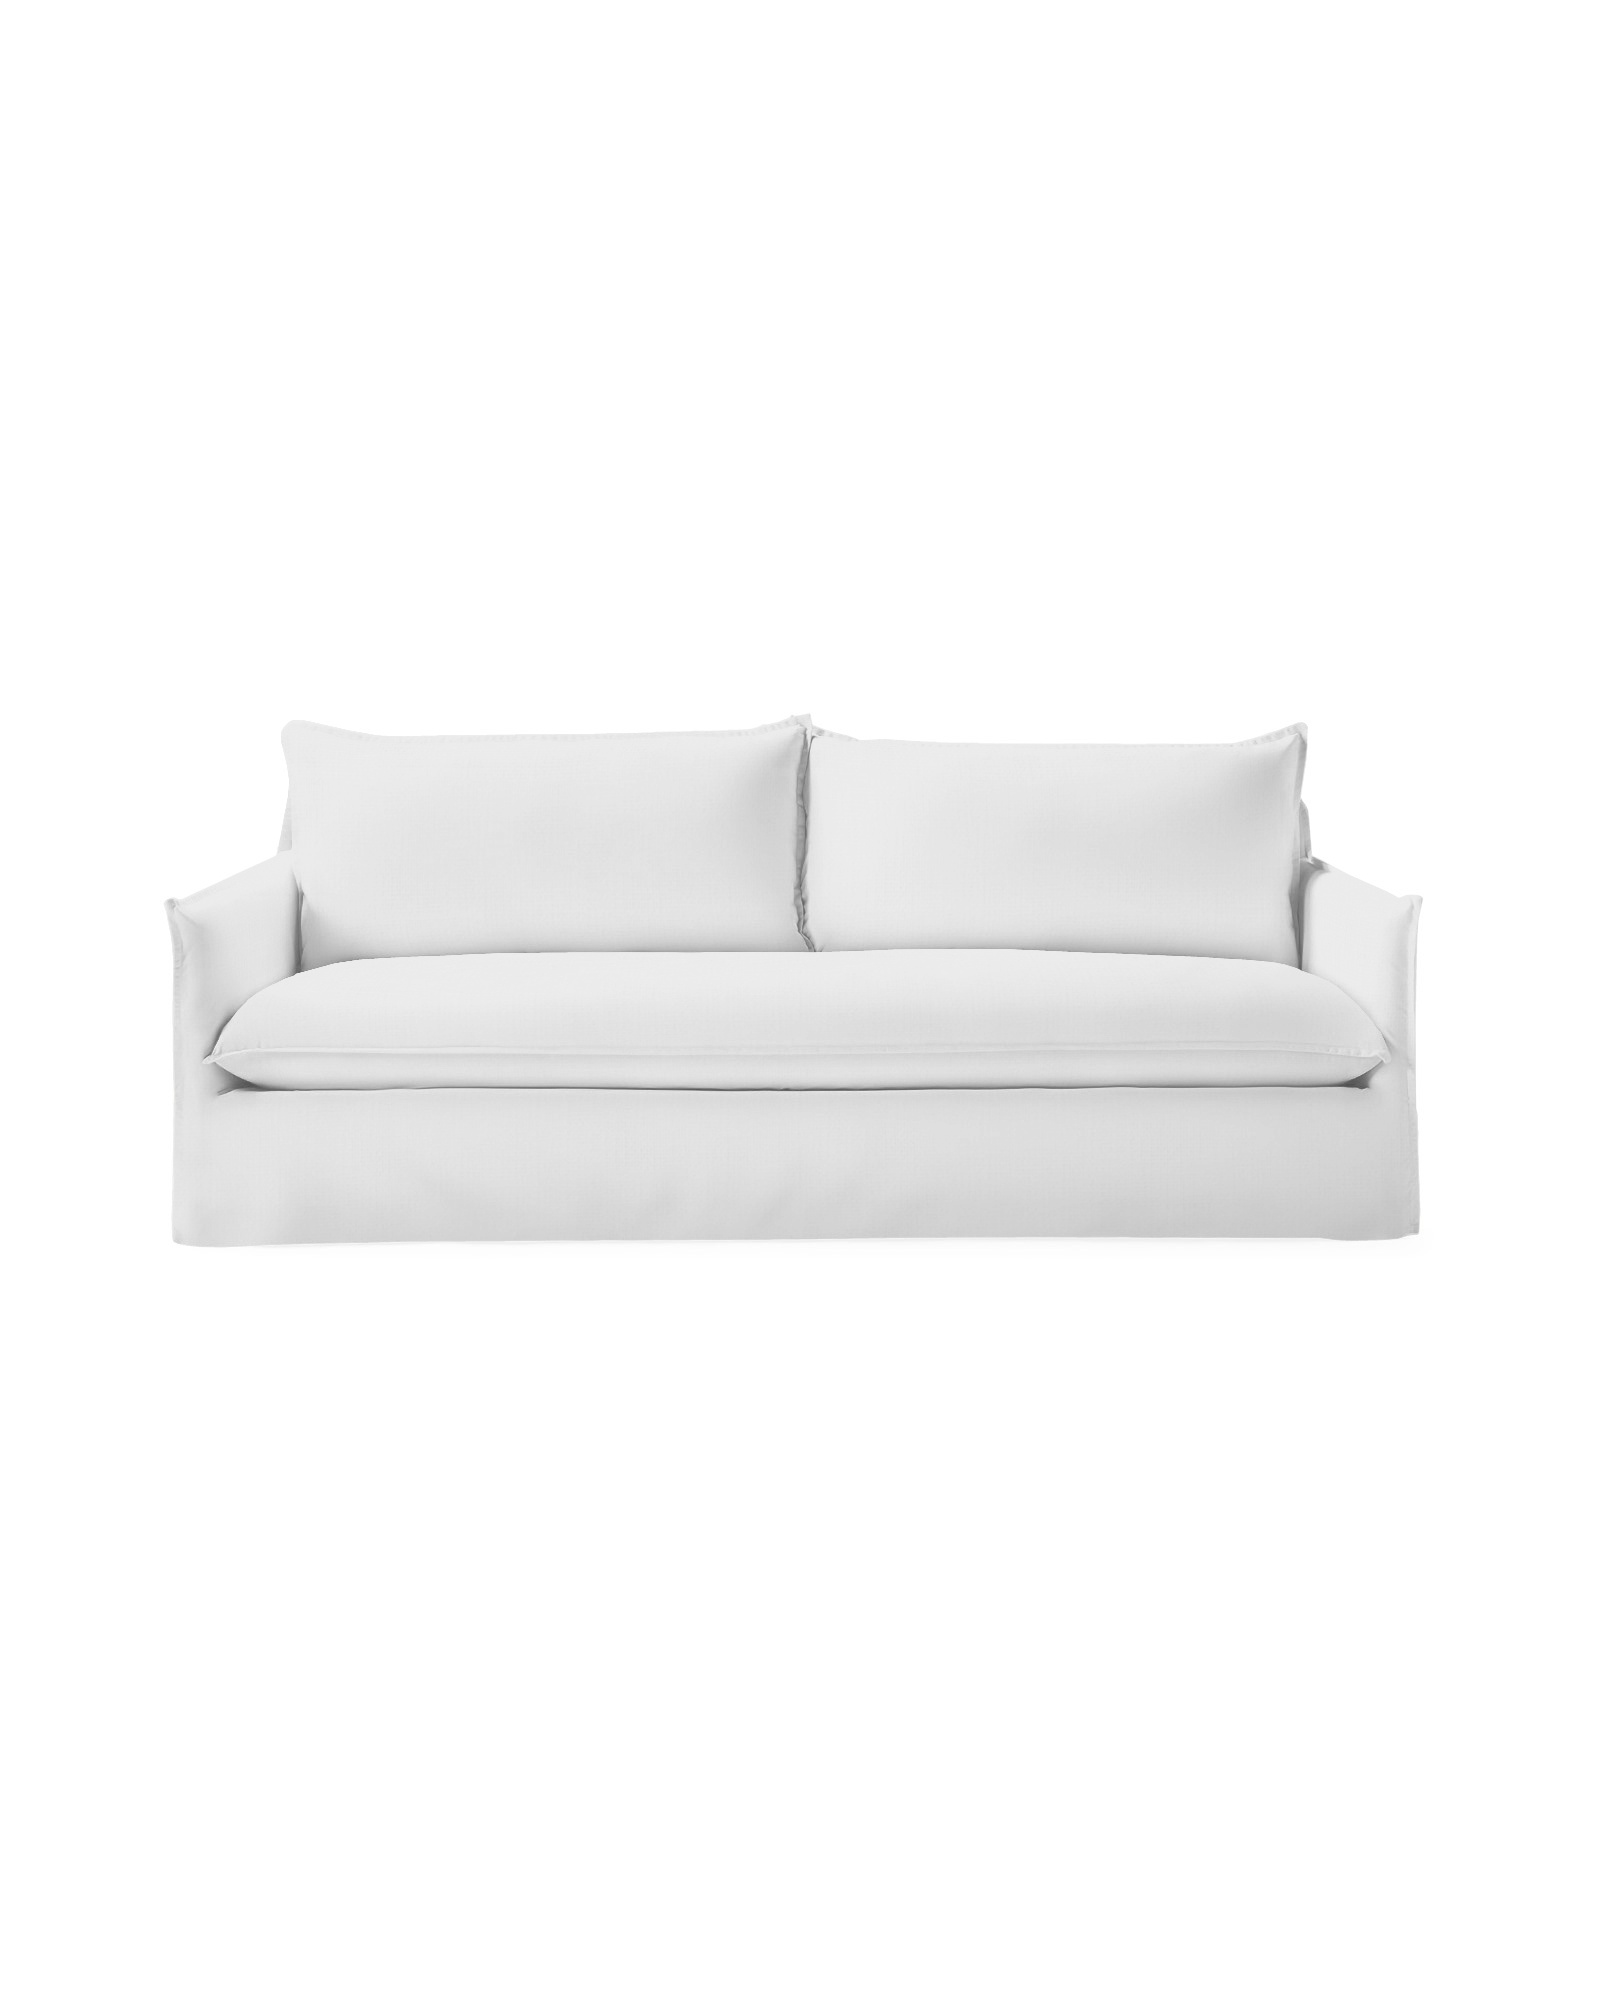 Sundial Outdoor Sofa with Bench Seat - Slipcovered